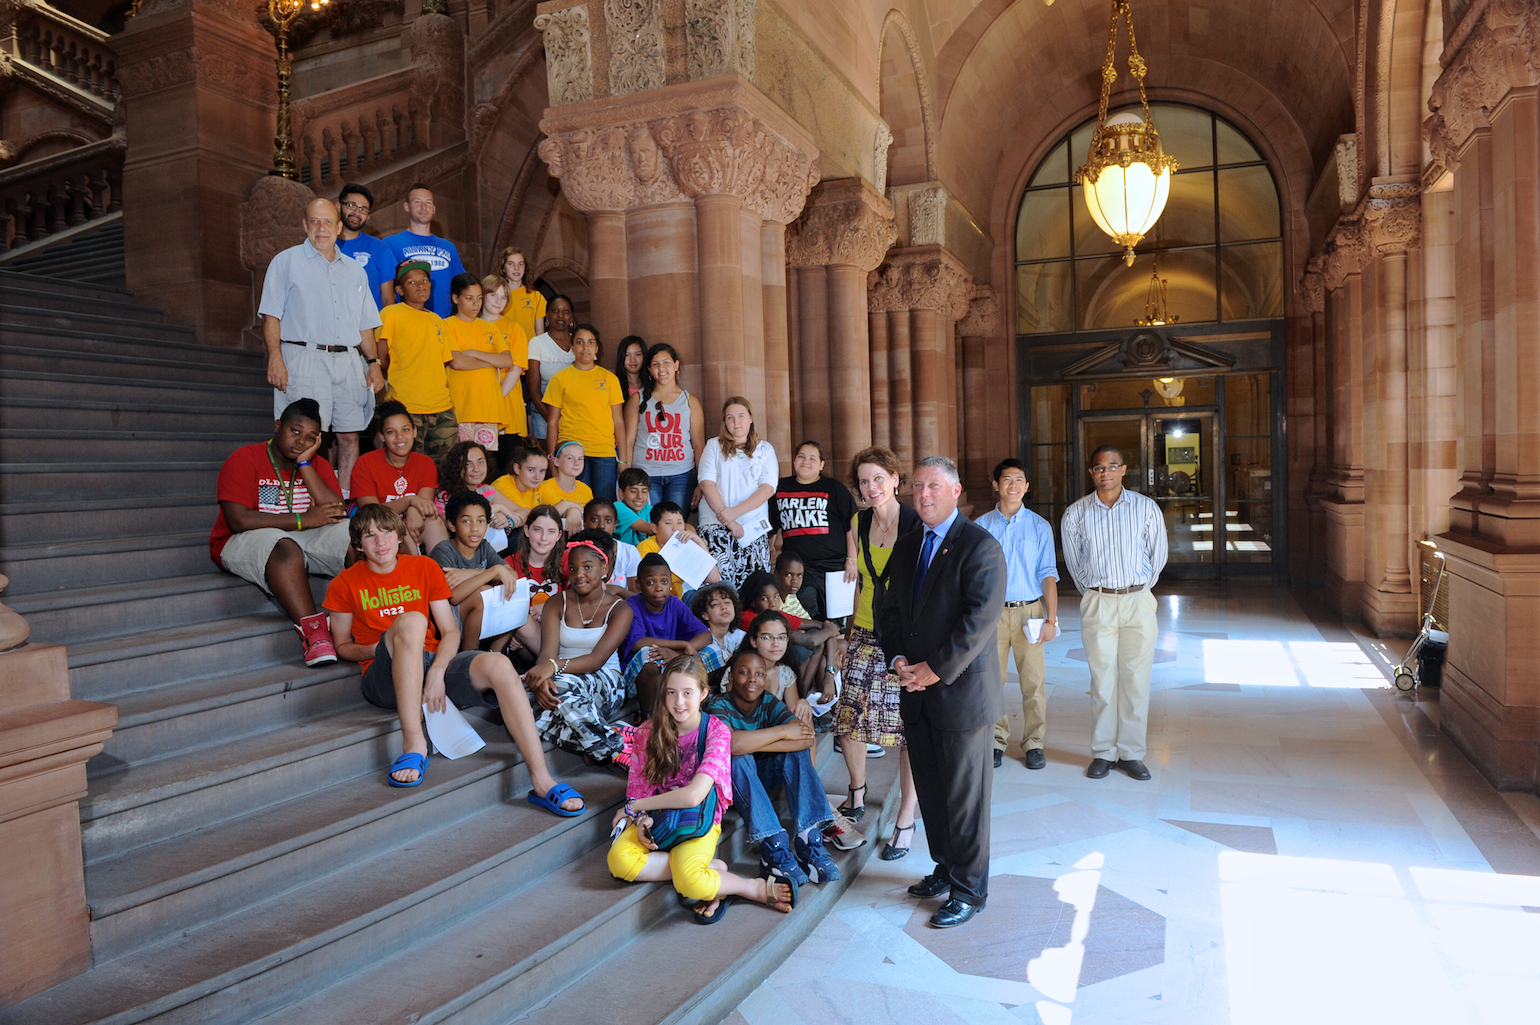 Assemblymembers Fahy and McDonald pictured with Albany Police Athletic League's Summer Camp at the Million Dollar staircase in the Capitol.